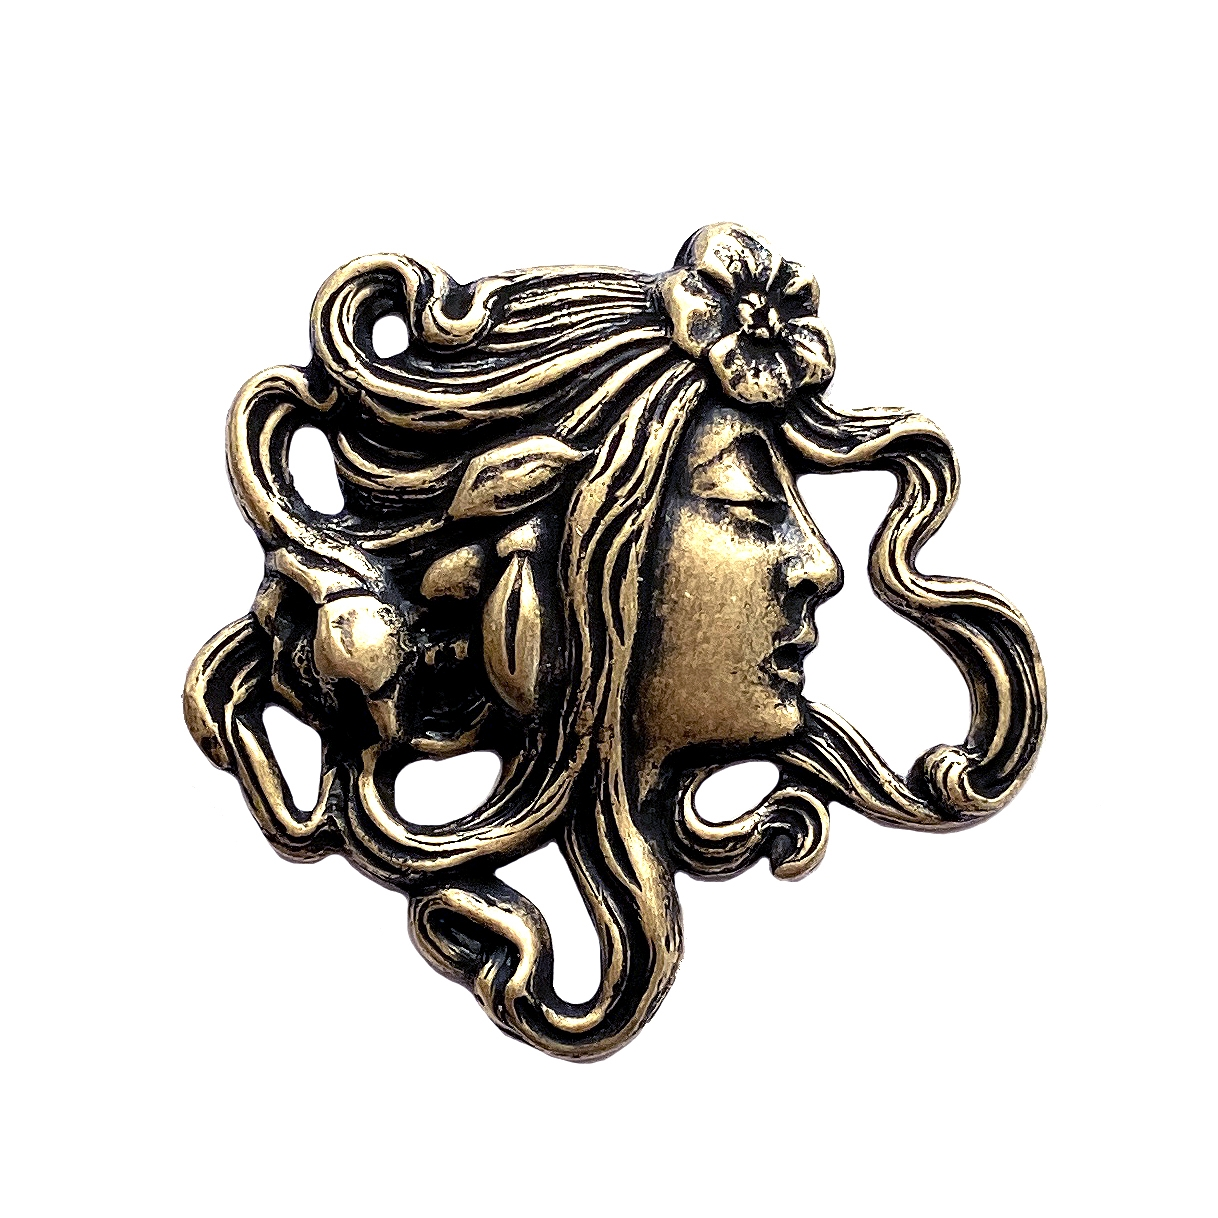 lady in the wind stamping, brass ox, bohemian style, lady stamping, lady face, brass stamping, boho style, jewelry making, jewelry supplies, vintage supplies, B'sue Boutiques, antique brass, 36x36mm, US-made, nickel-free, 01331